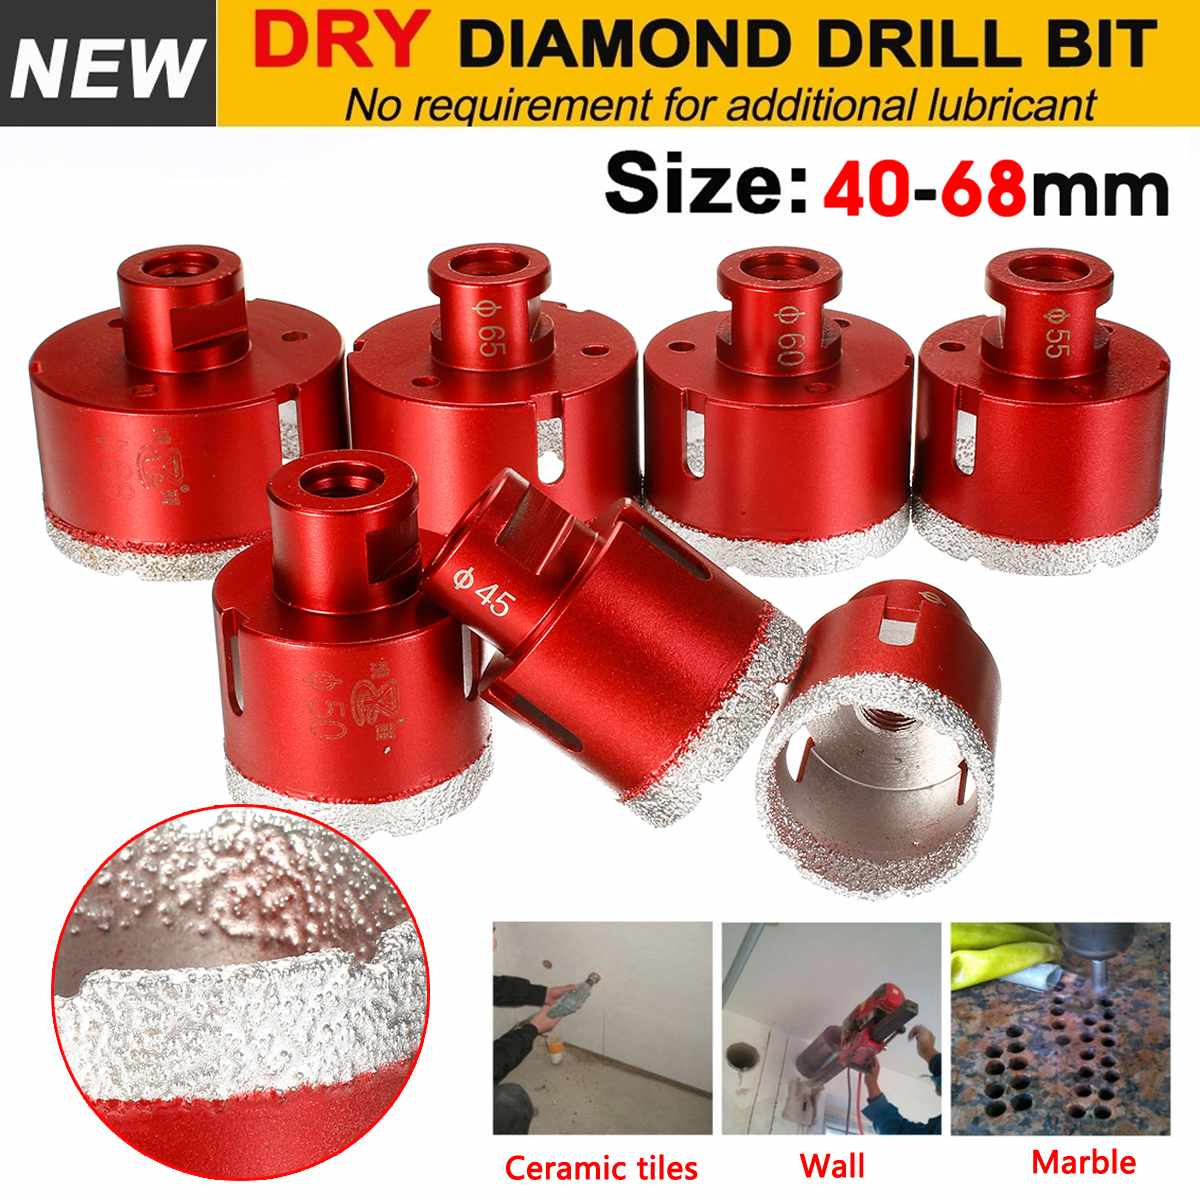 Doersupp 40-68mm M14 Marble Opener Diamond Drill Core Bits Drilling Hole Saw Tools For Tile Marble Granite Stone Concrete Drill